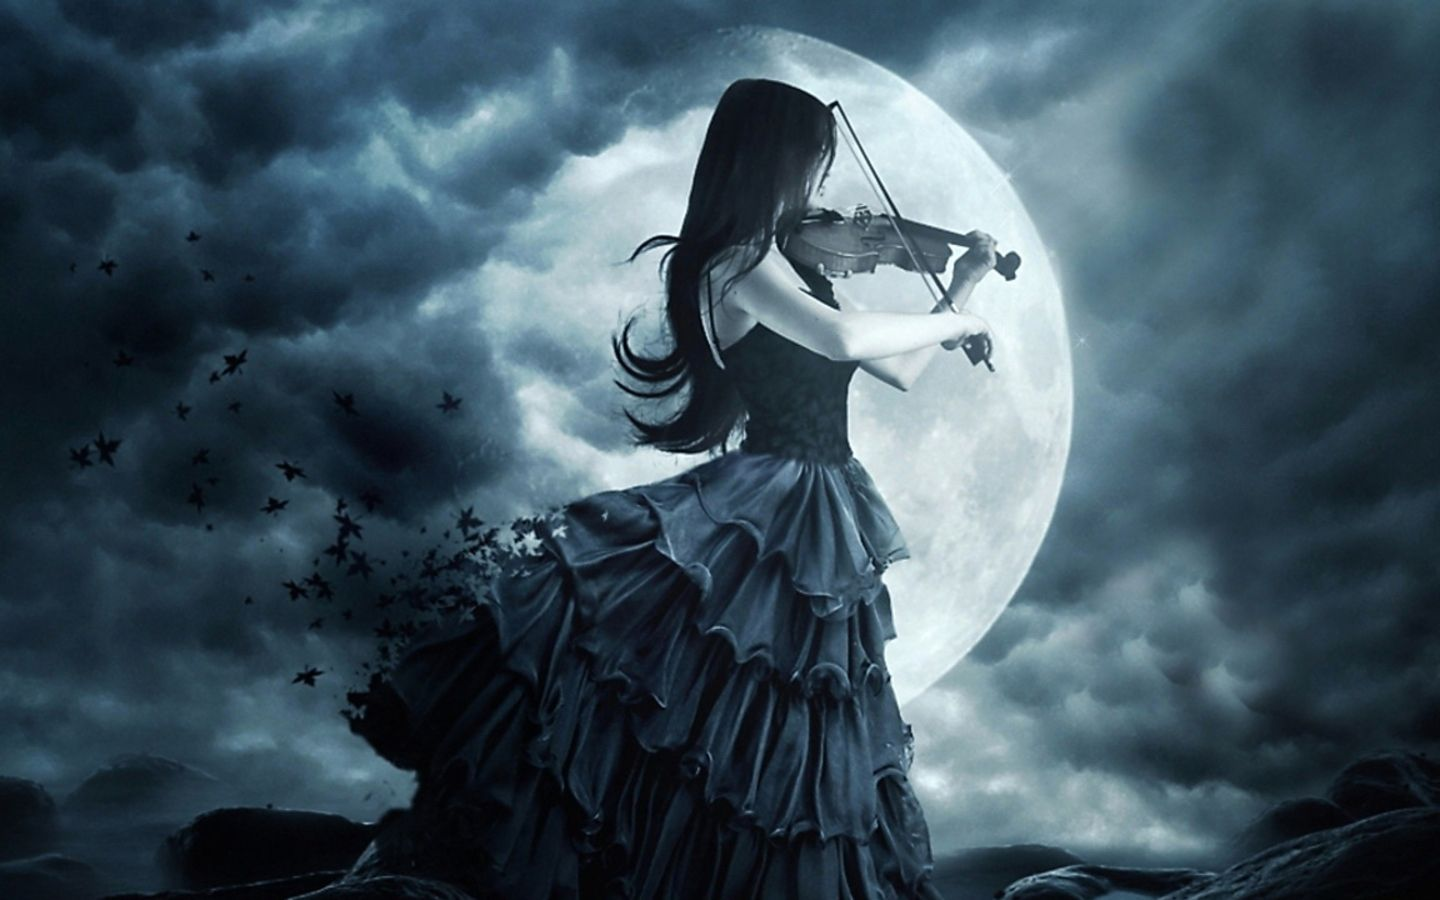 Dark Gothic Moon Alpha Coders Wallpaper Abyss Everything Gothic Dark Gothic 322280 Gothic Wallpaper Gothic Music Girl Playing Violin